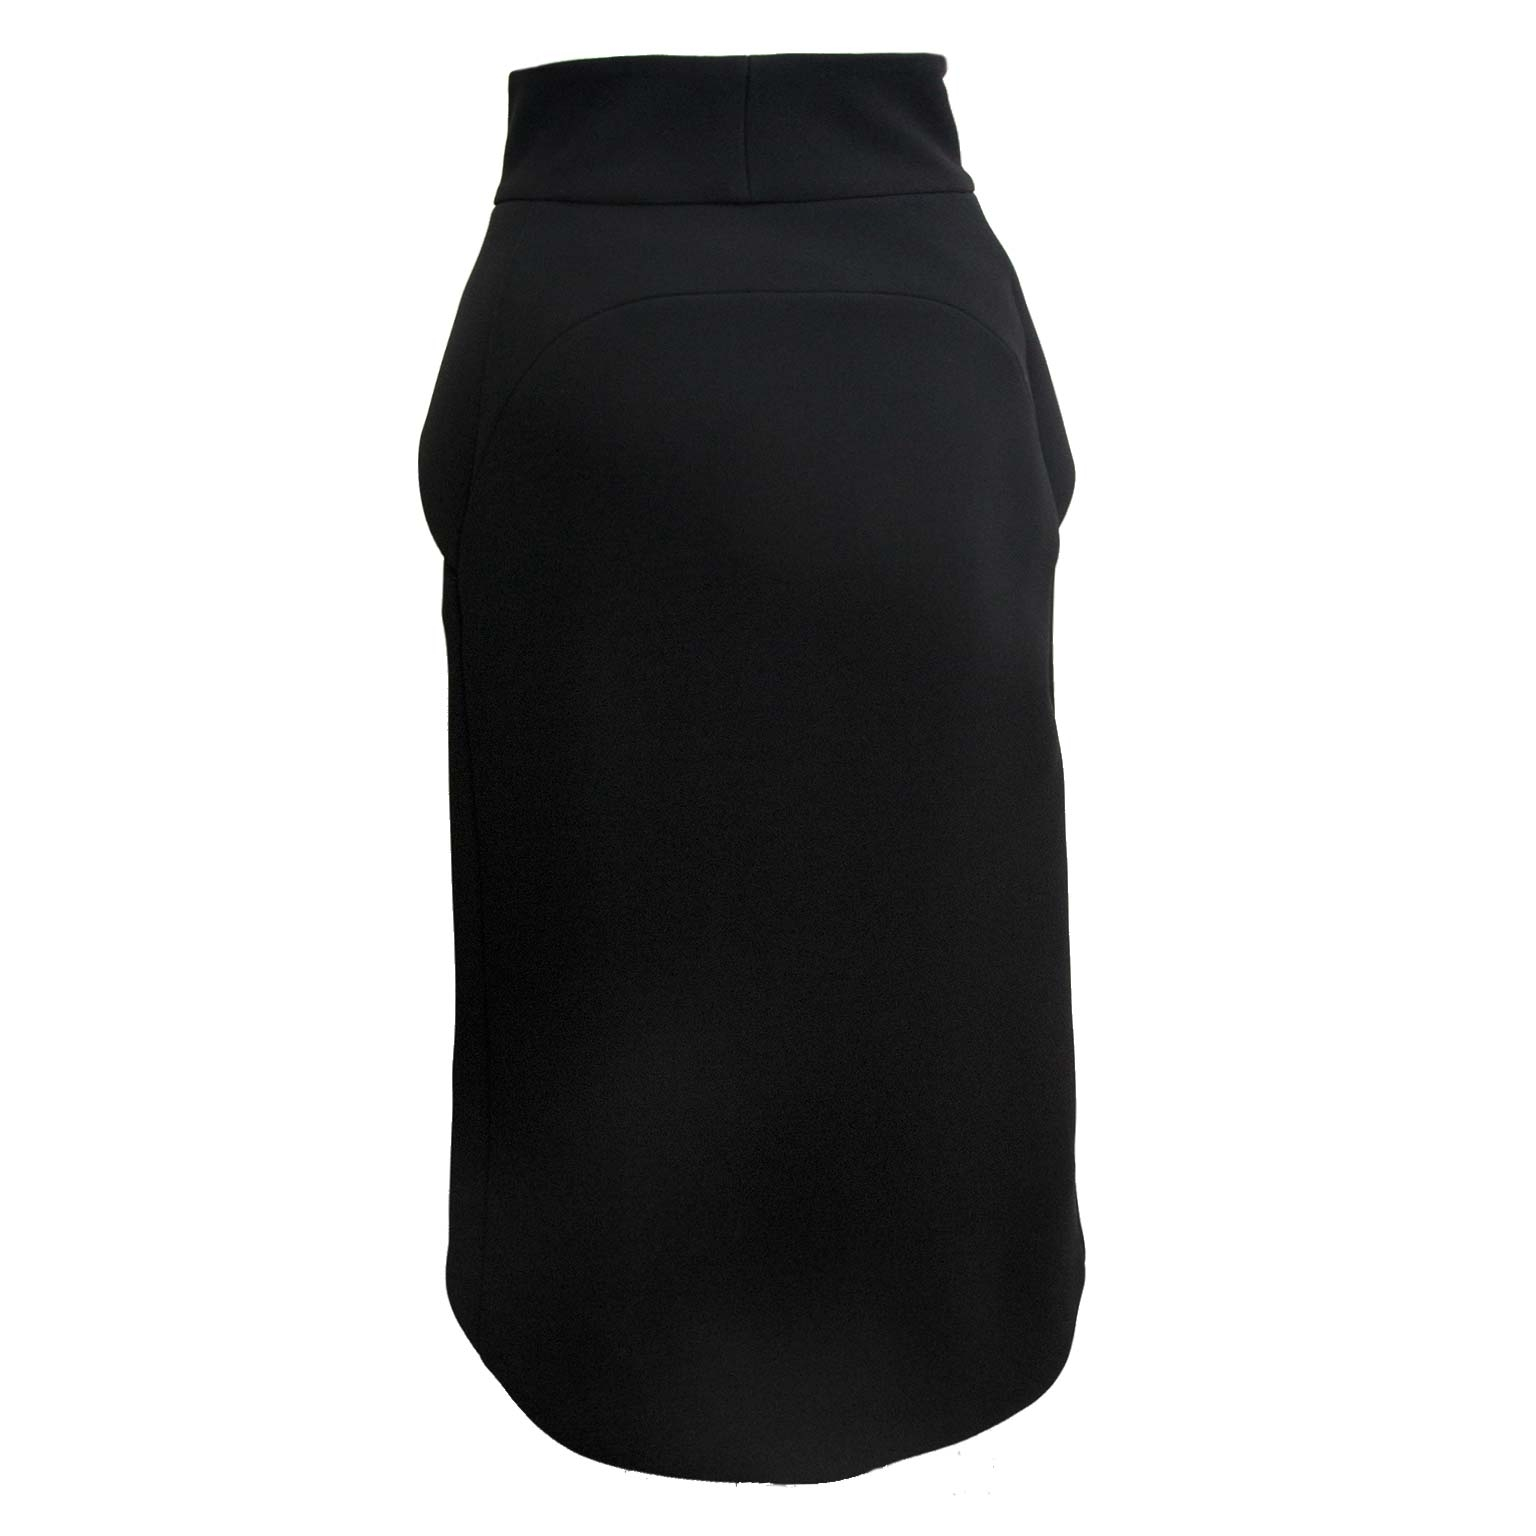 balenciaga black slip skirt now for sale at labellov vintage fashion webshop belgium